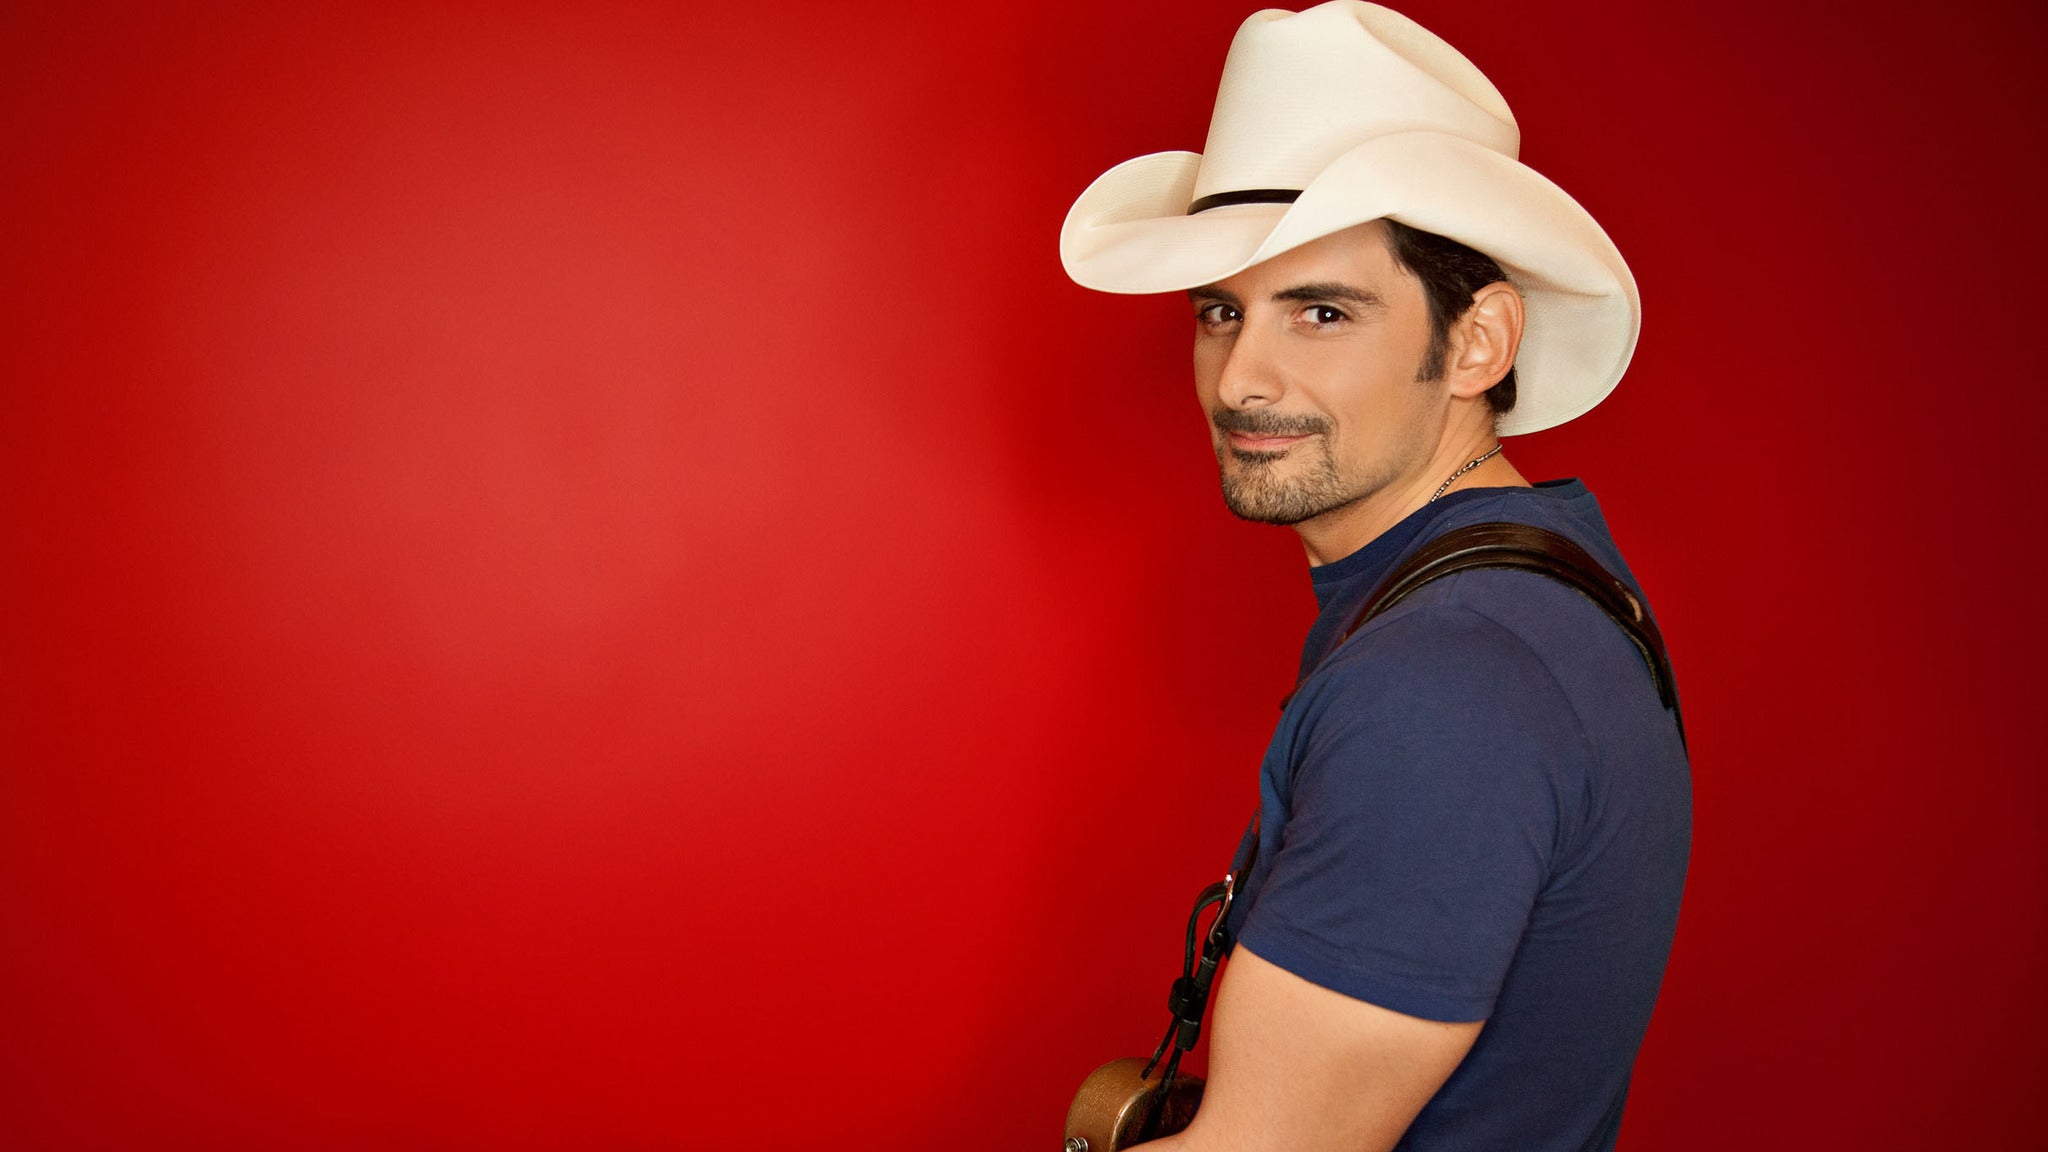 Brad Paisley at Verizon Arena - North Little Rock